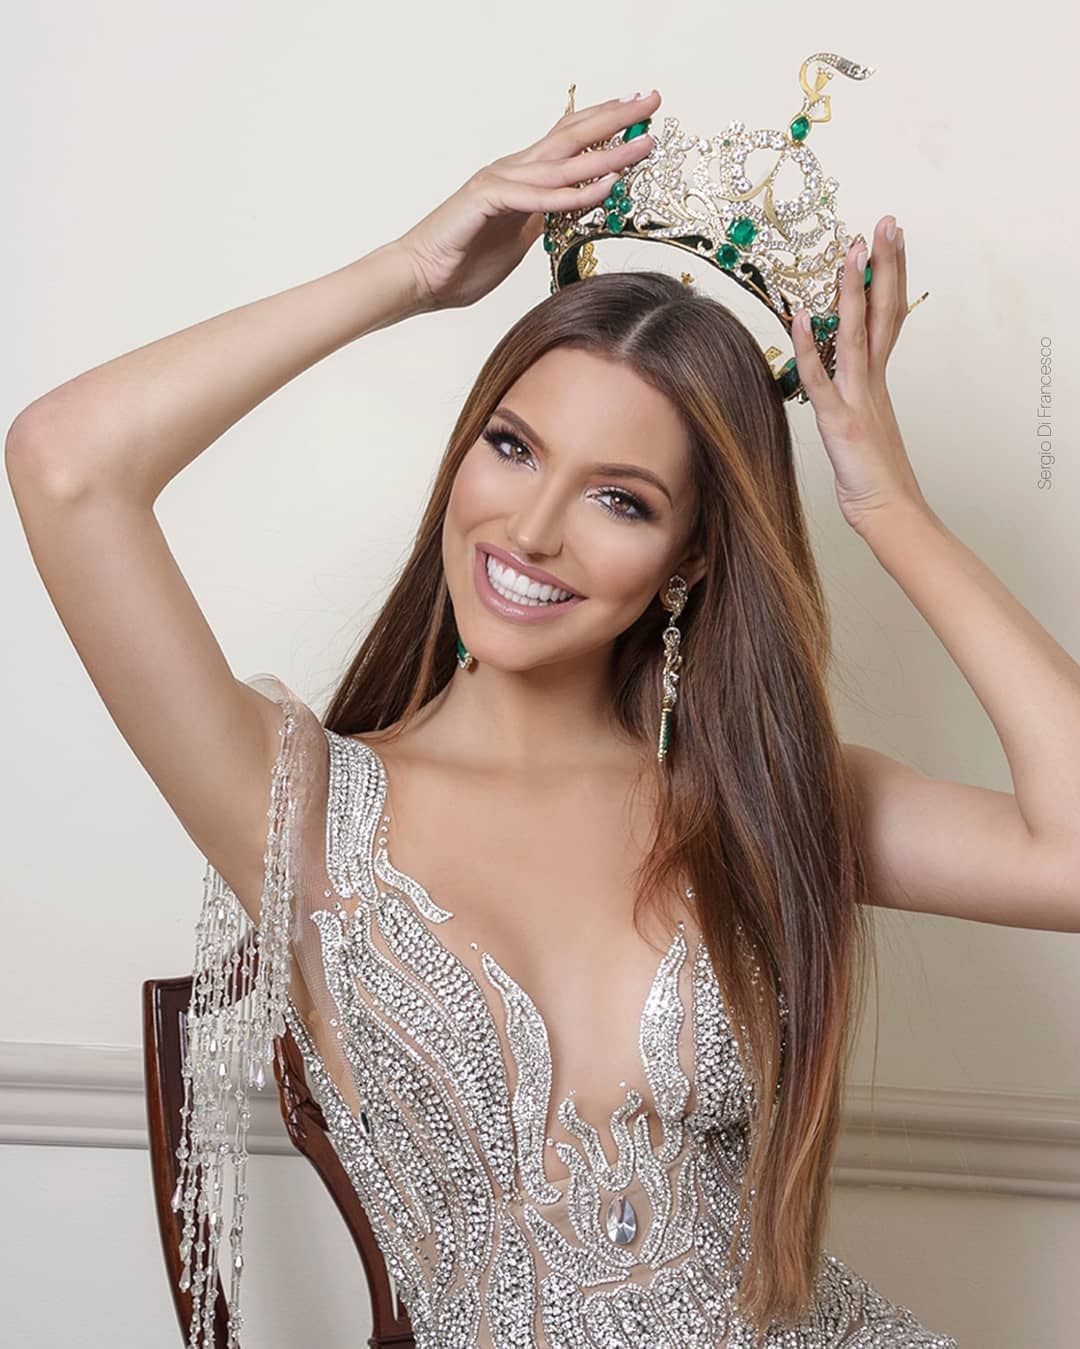 Official Thread of MISS GRAND INTERNATIONAL 2019 - Lourdes Valentina Figuera - VENEZUELA - Page 2 74187703-2632537876769192-5186571690259251200-o